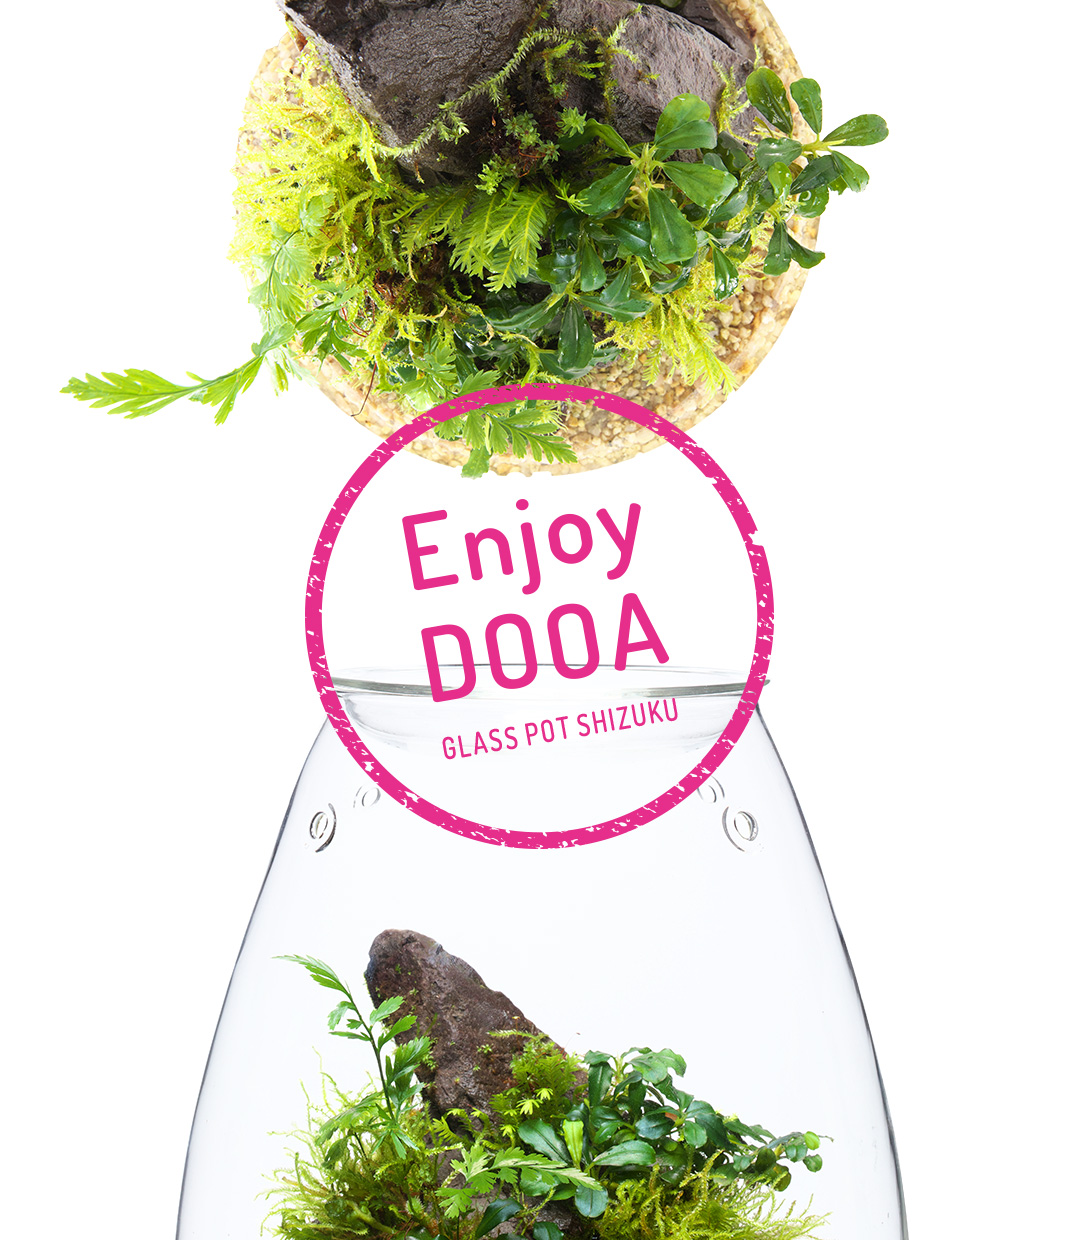 Enjoy DOOA 'GLASS POT SHIZUKU'